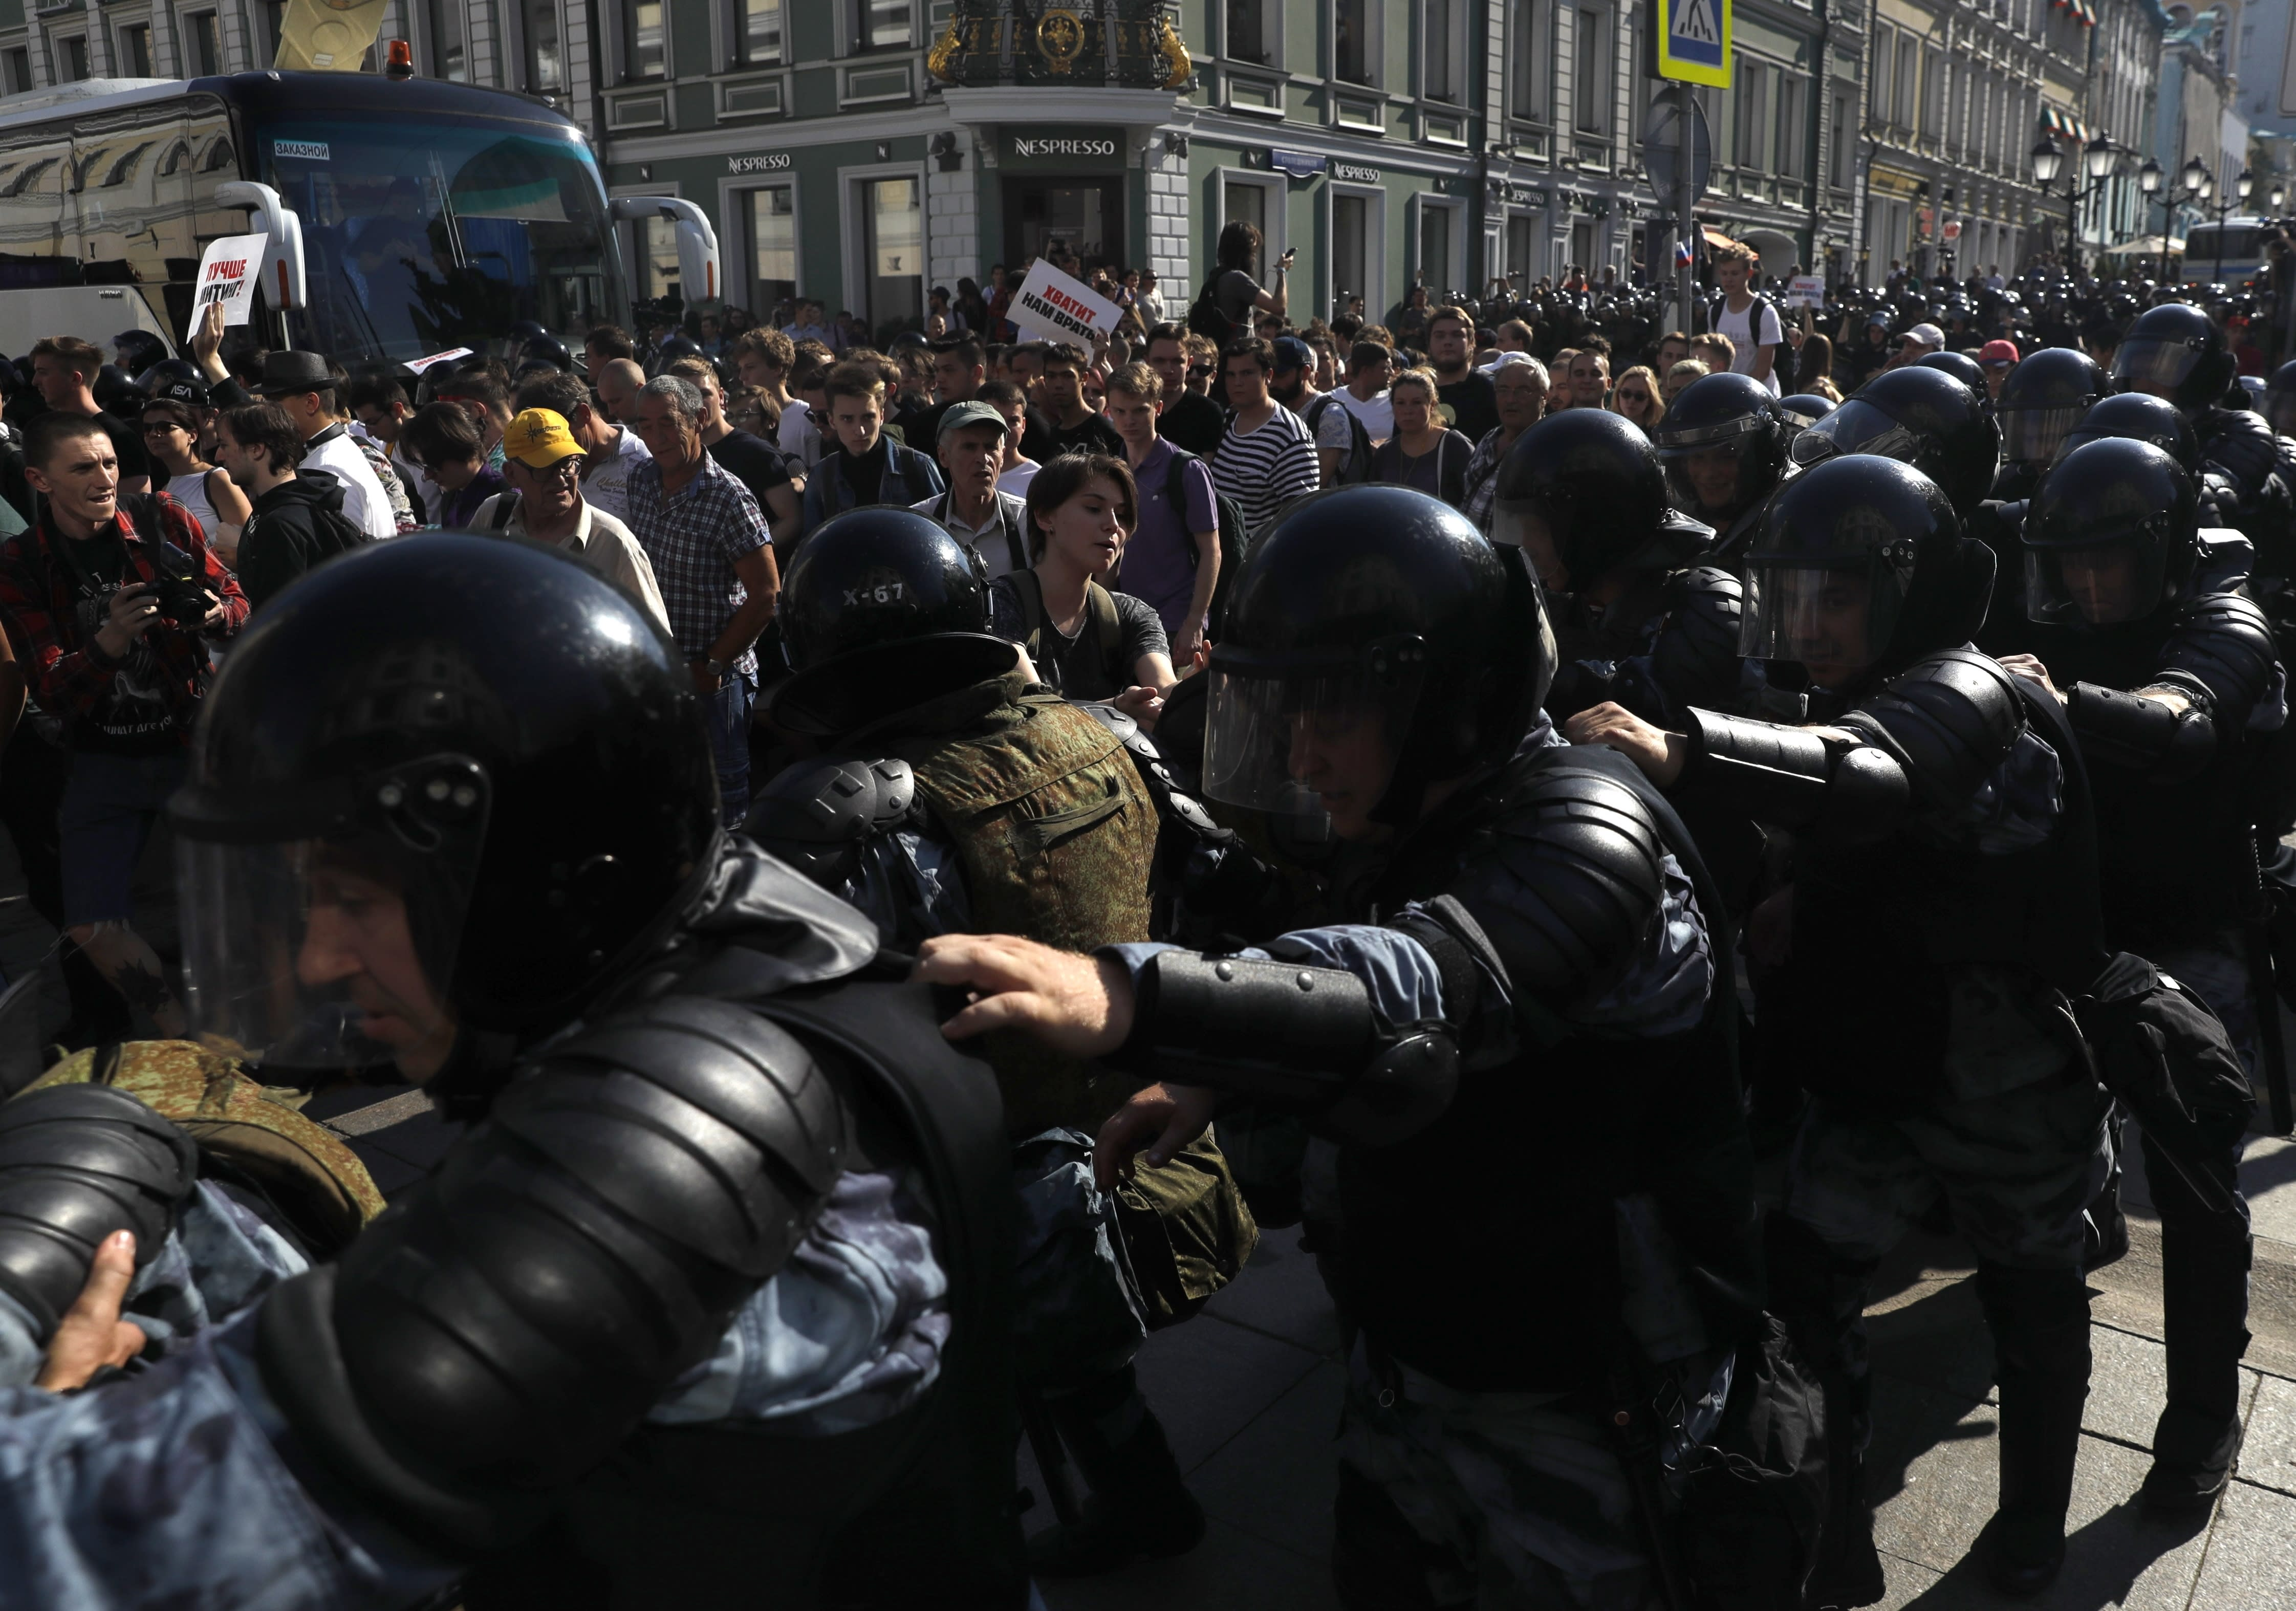 The Latest: Putin critic sent to hospital for severe allergy